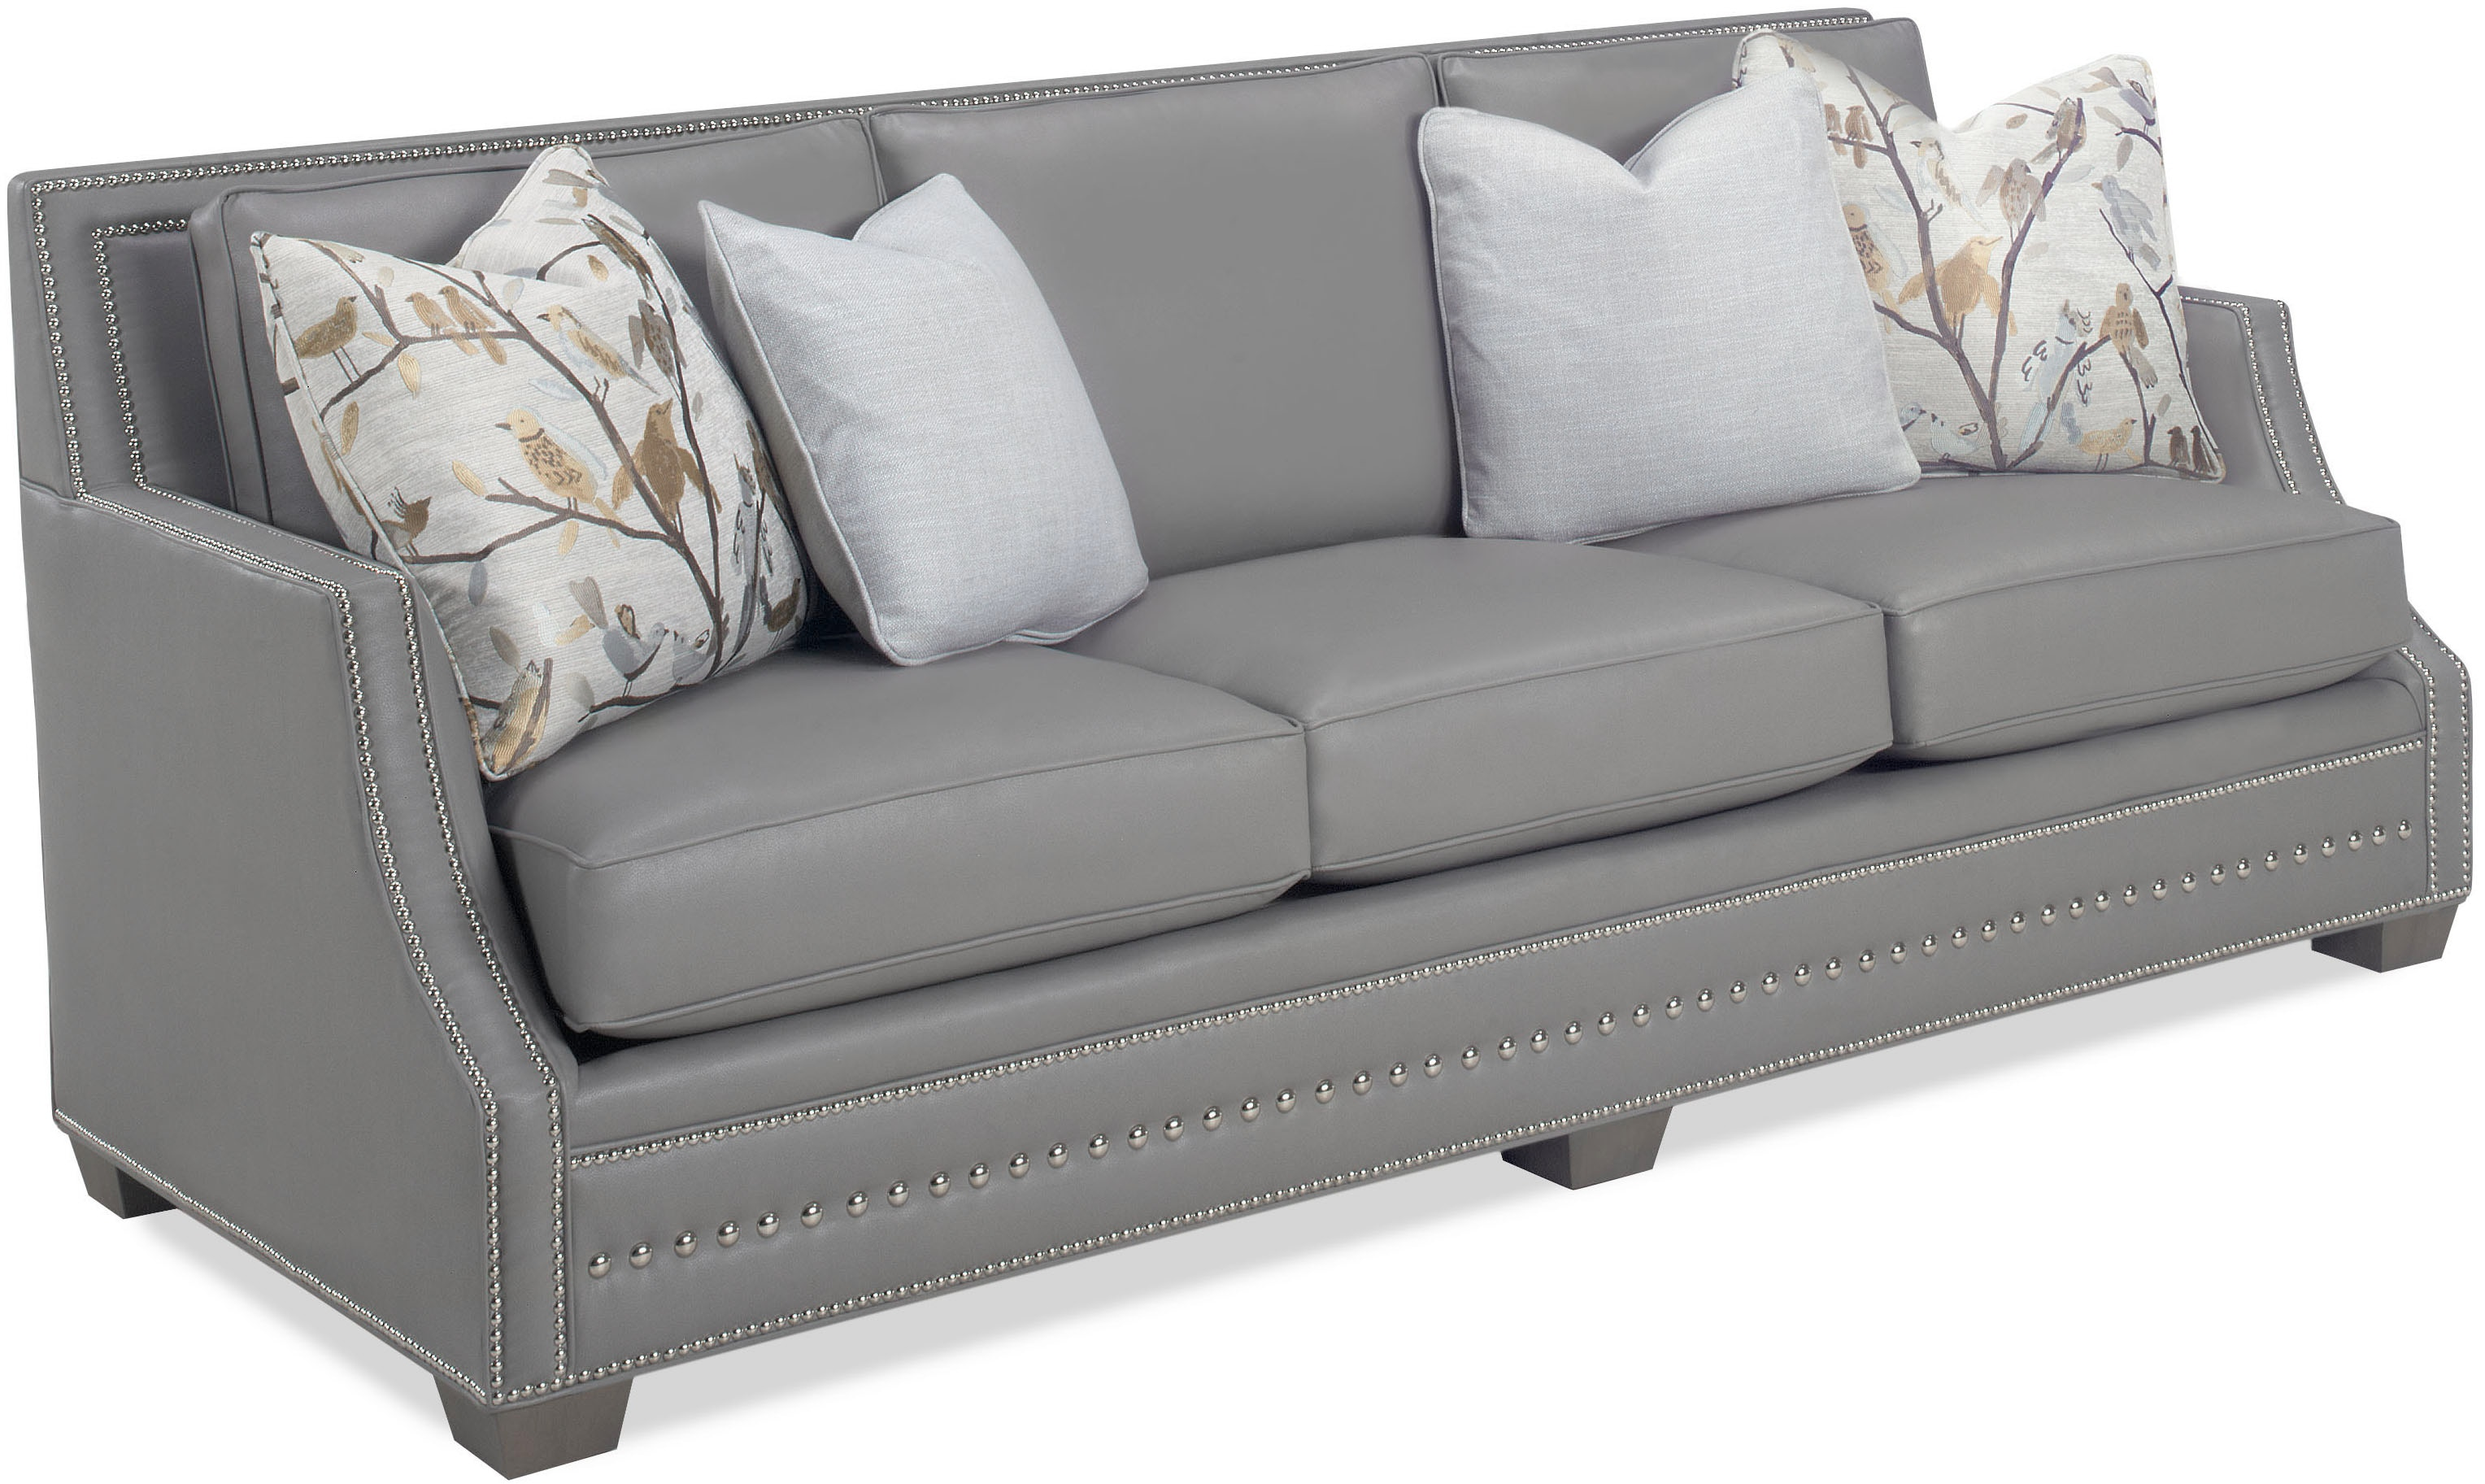 Merveilleux Temple Living Room Sofa 24390 88   Lenoir Empire Furniture ...